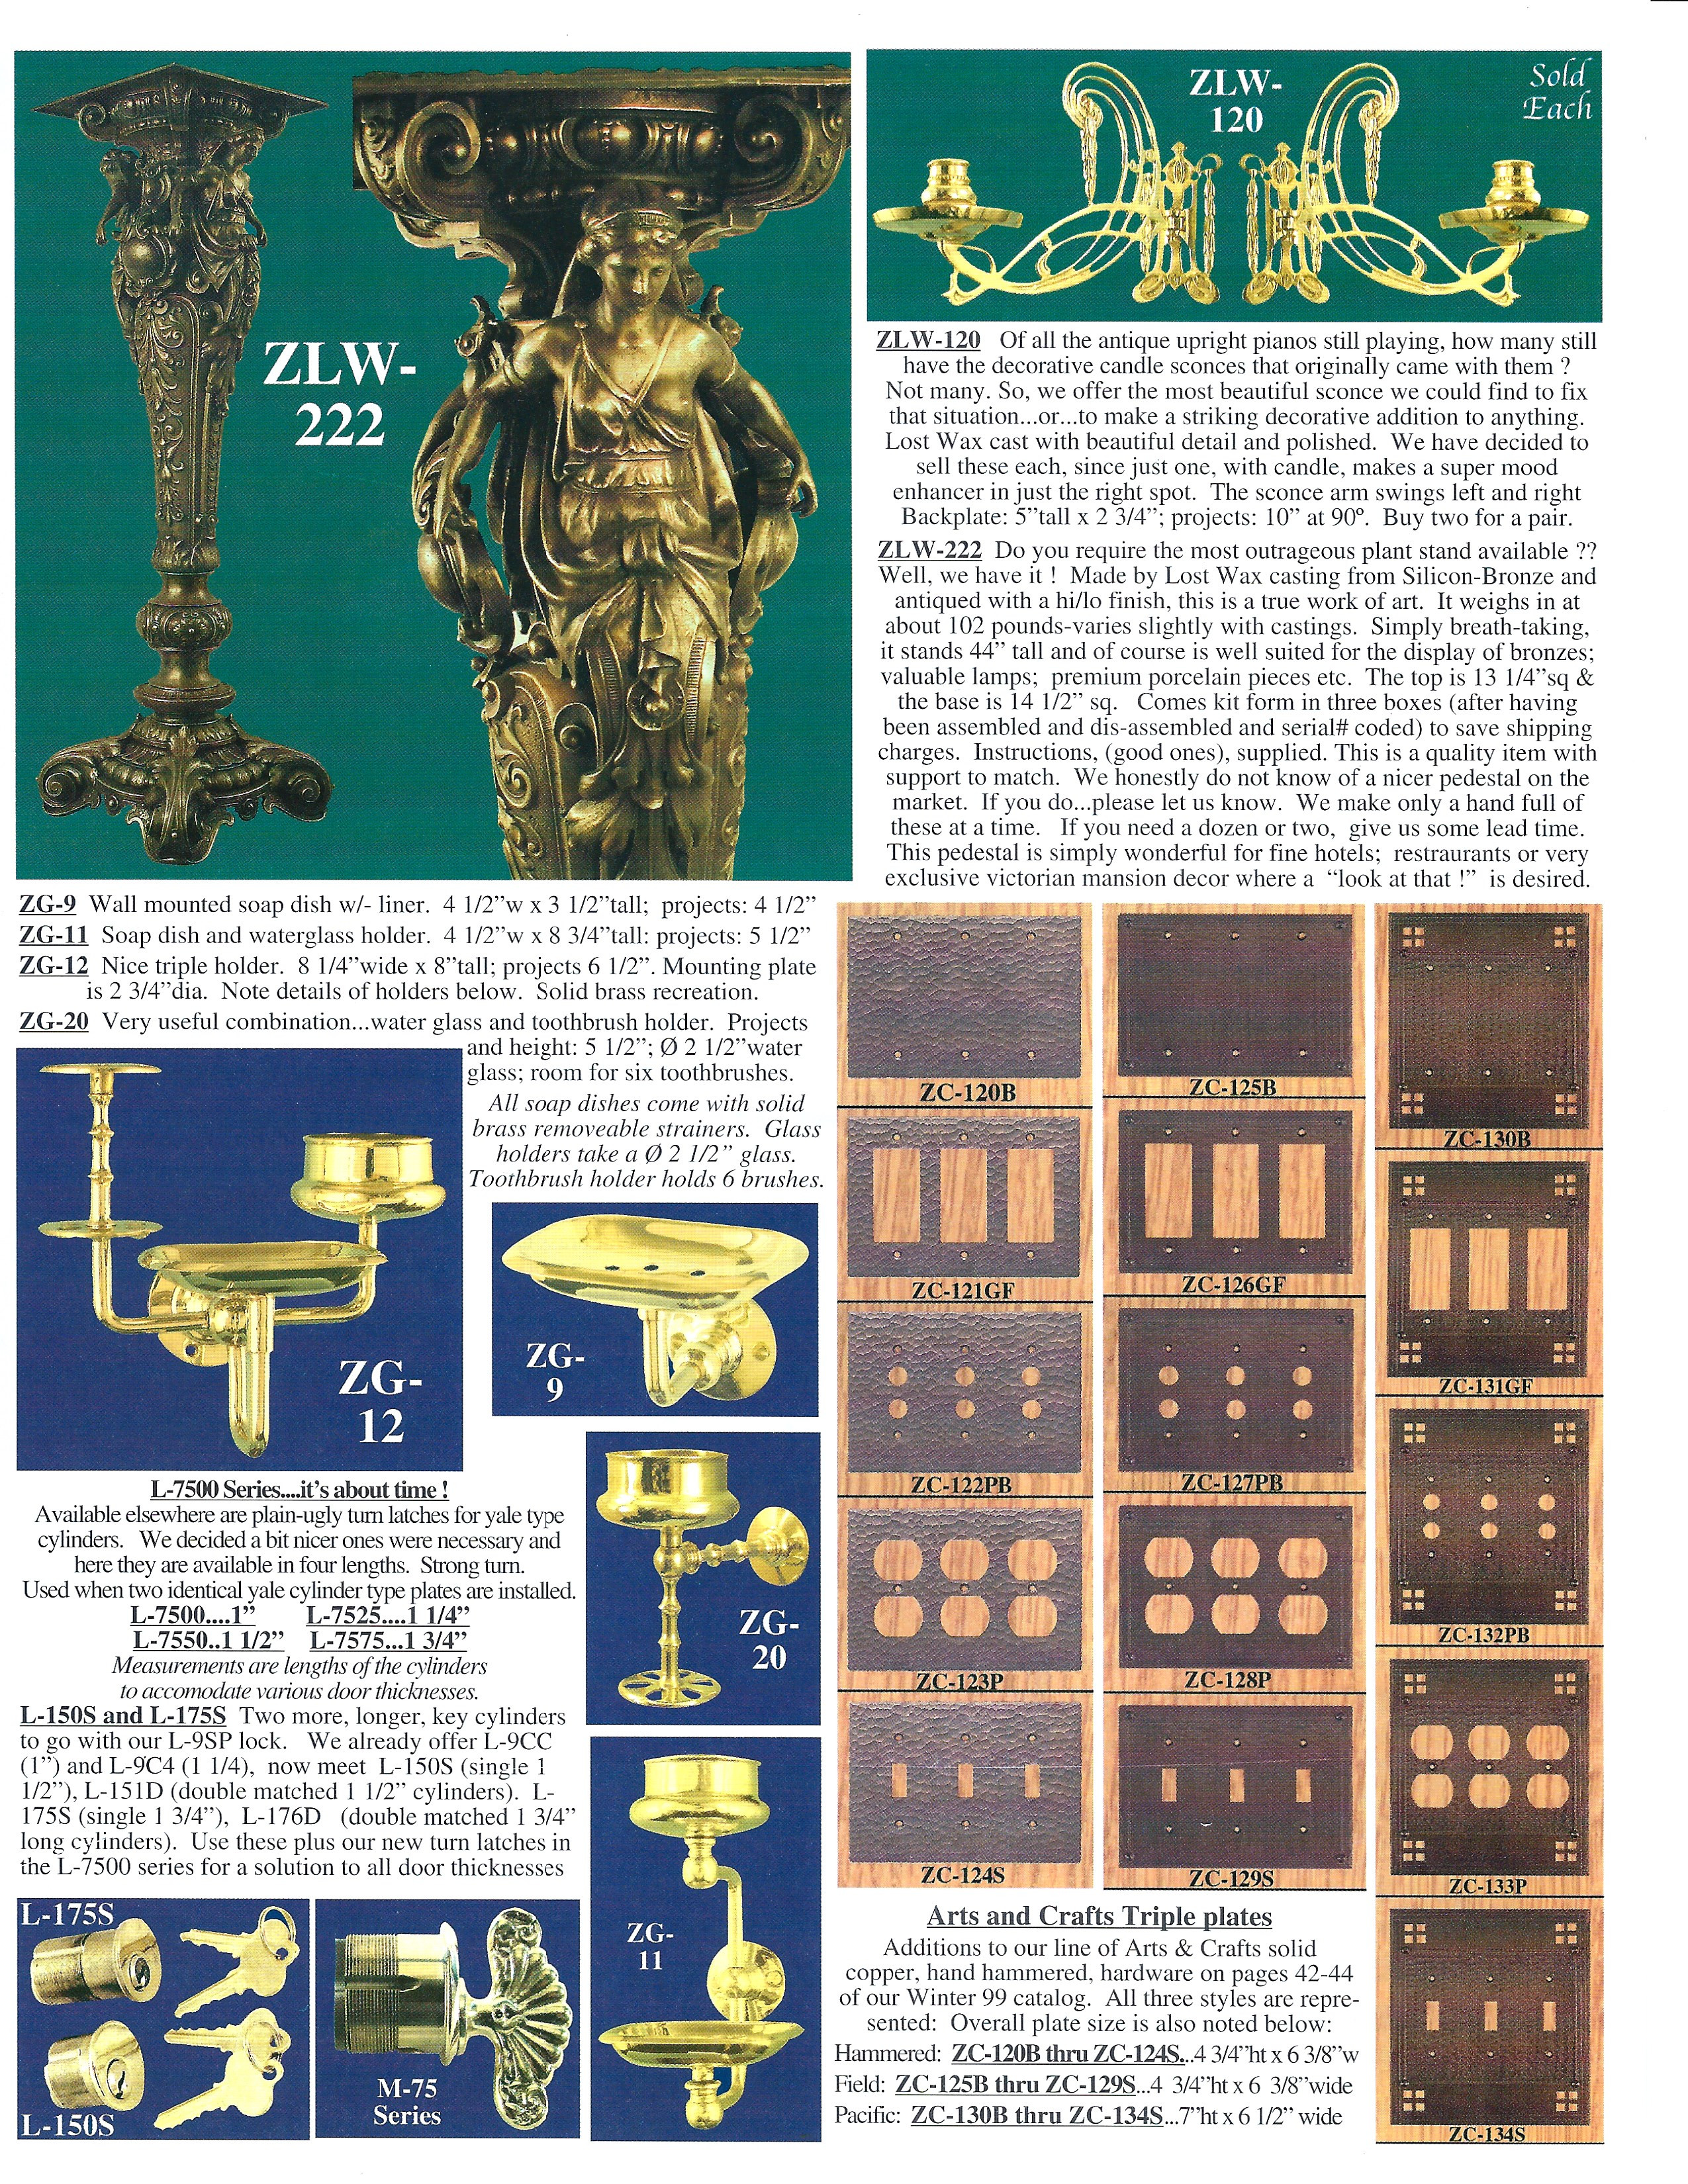 Catalog page 43